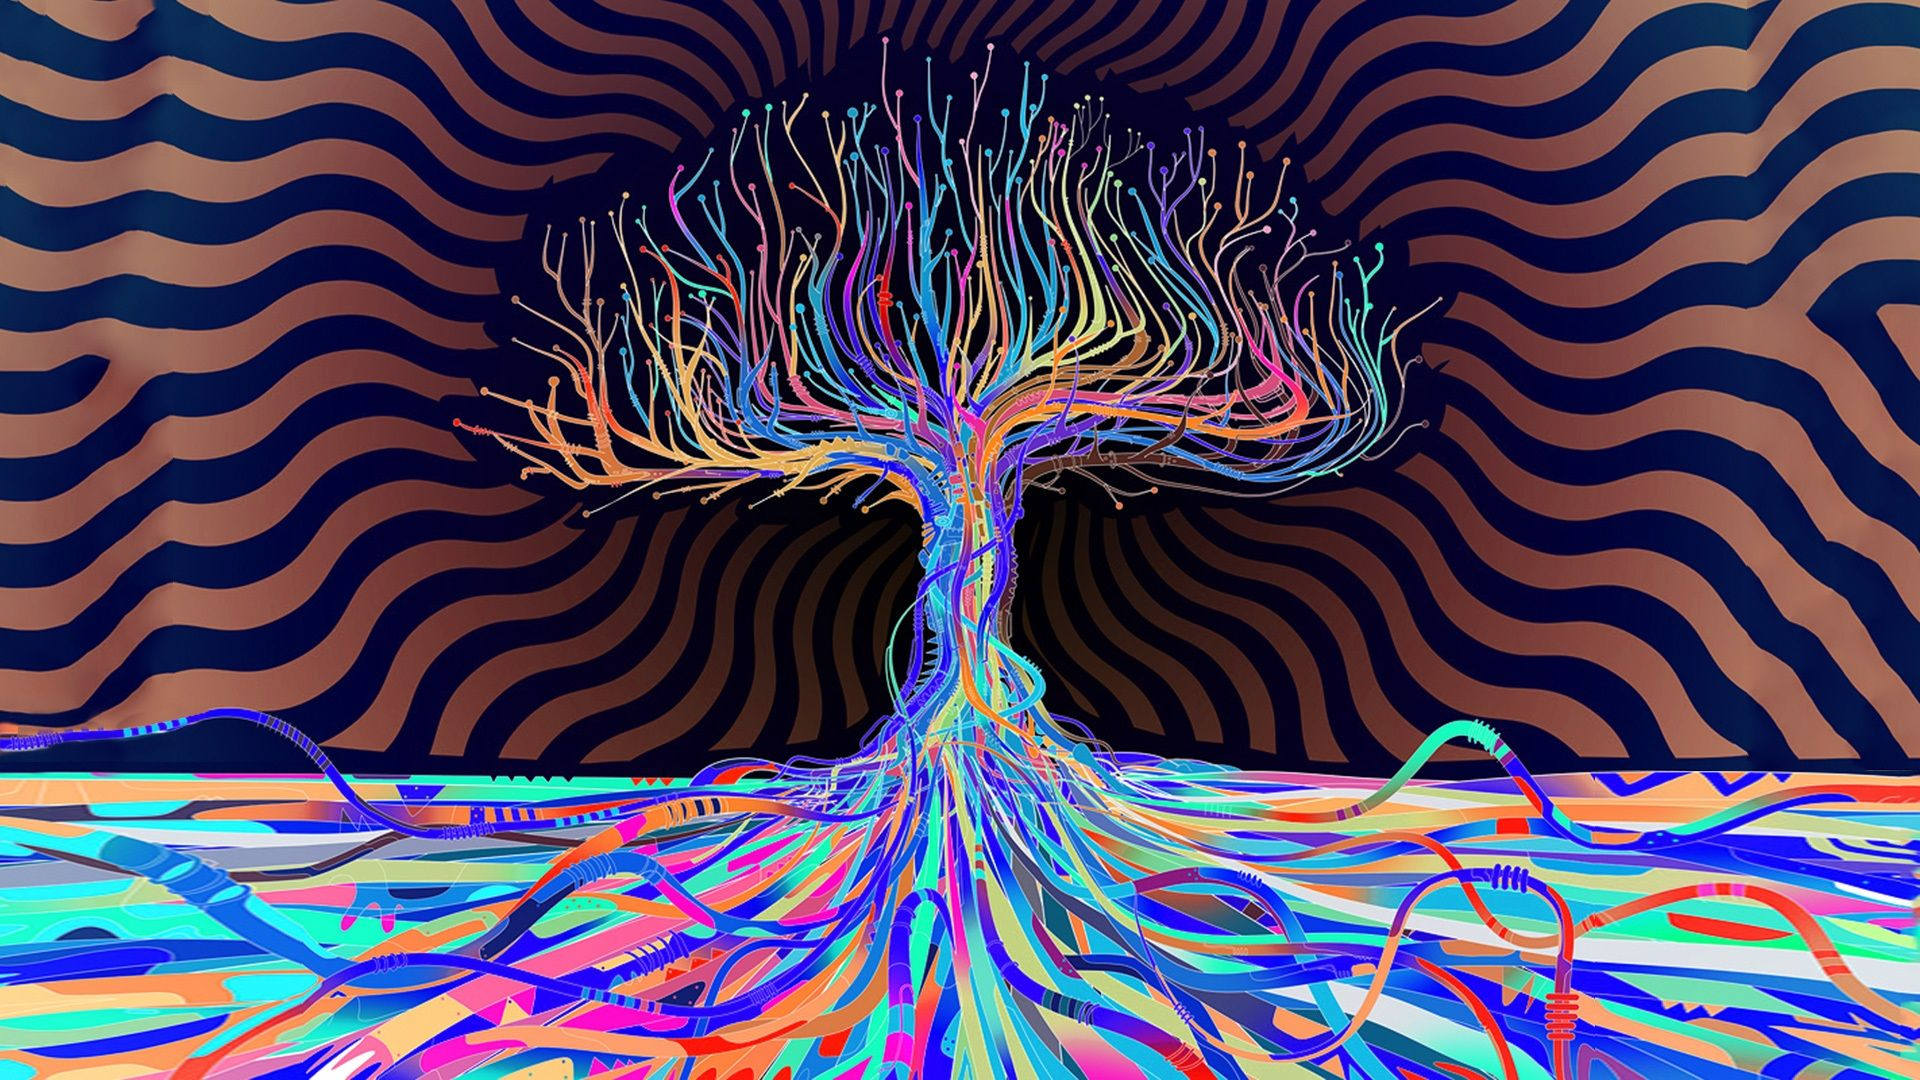 Psychedelic Nature Art Wallpaper Google Search Universe Sacred